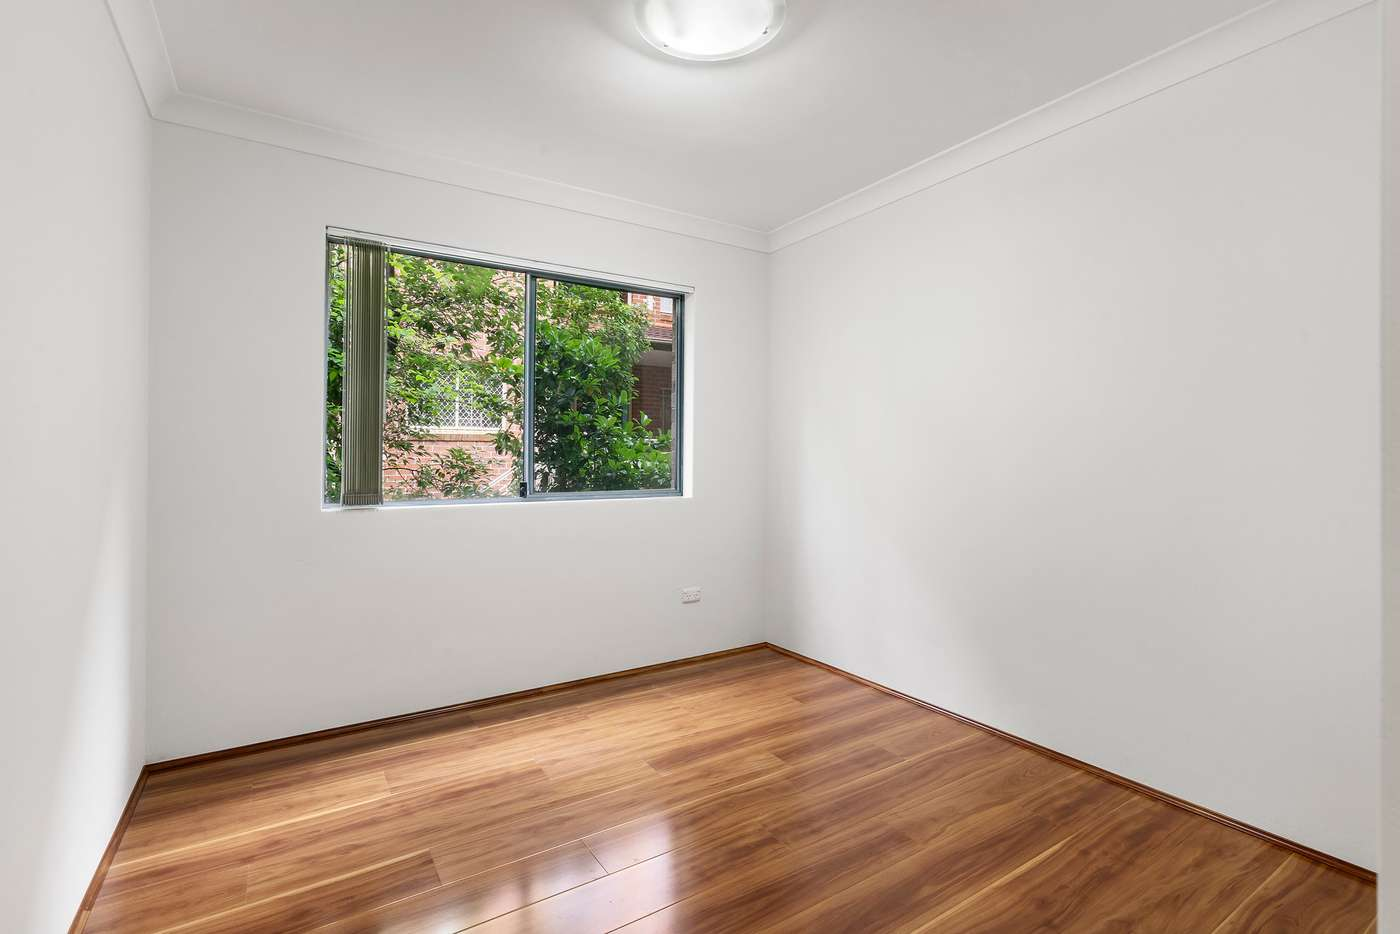 Fifth view of Homely apartment listing, 4/21-23 Early Street, Parramatta NSW 2150